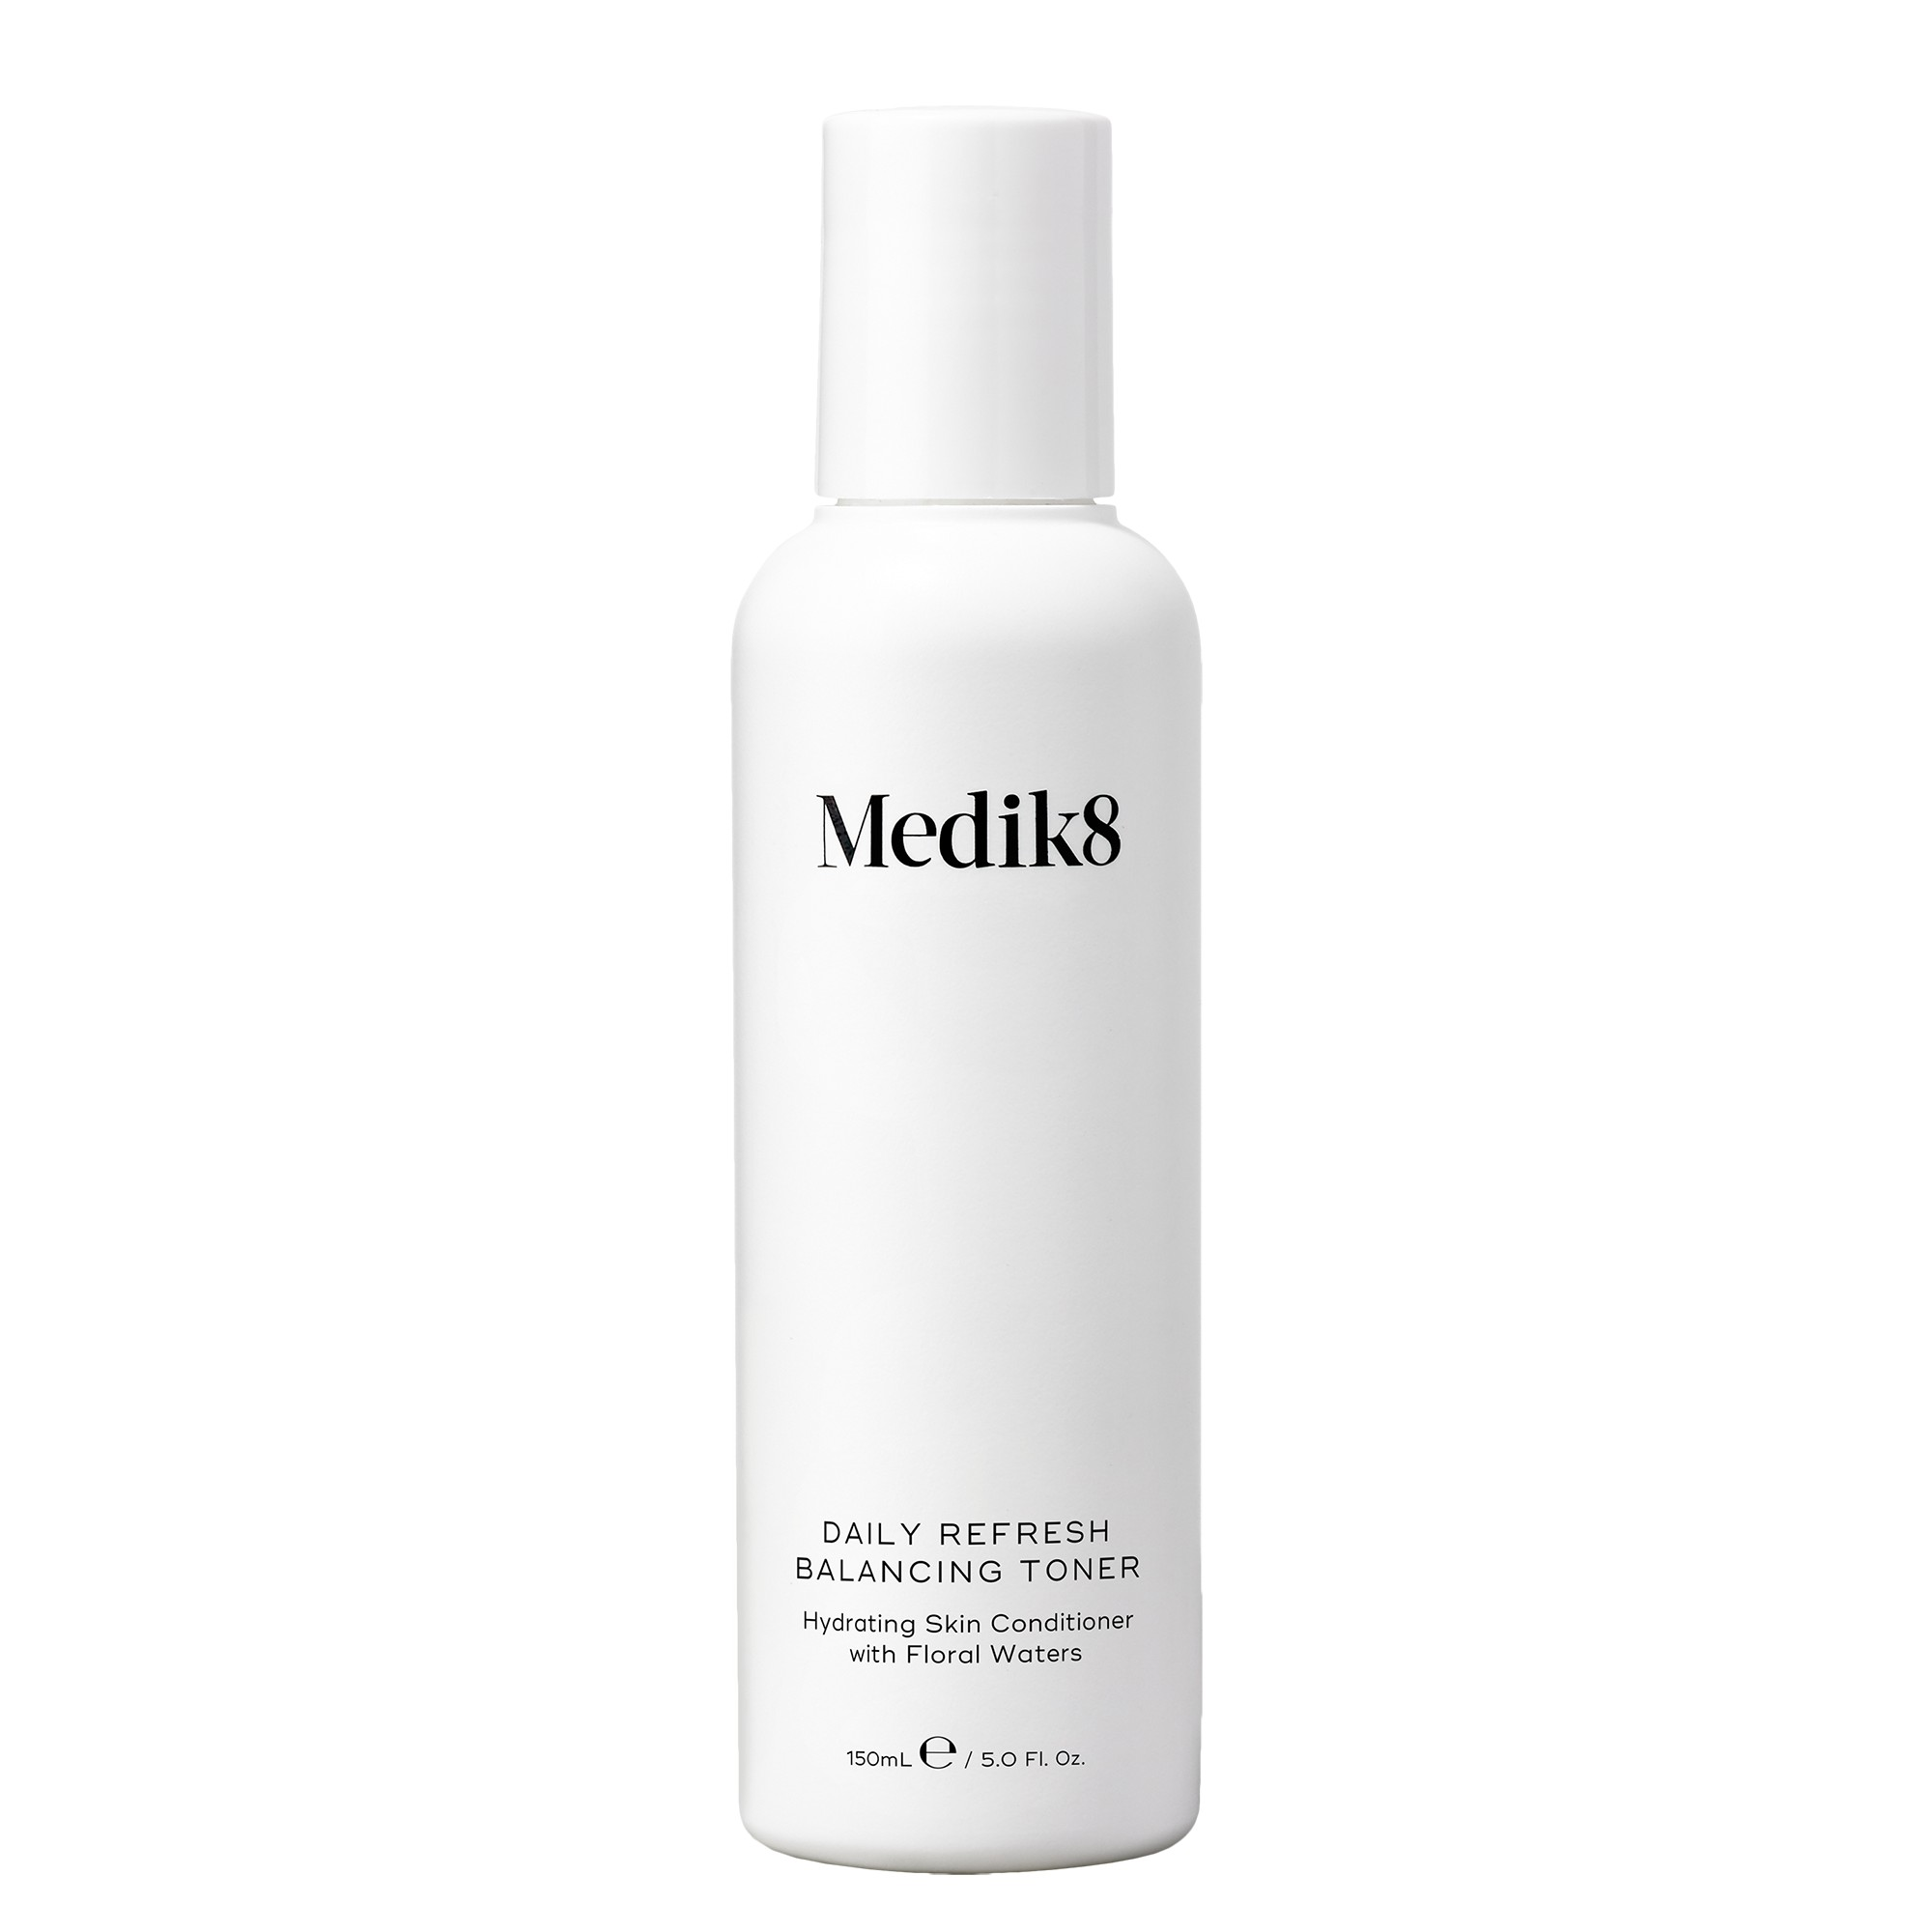 Daily Refresh Balancing Toner